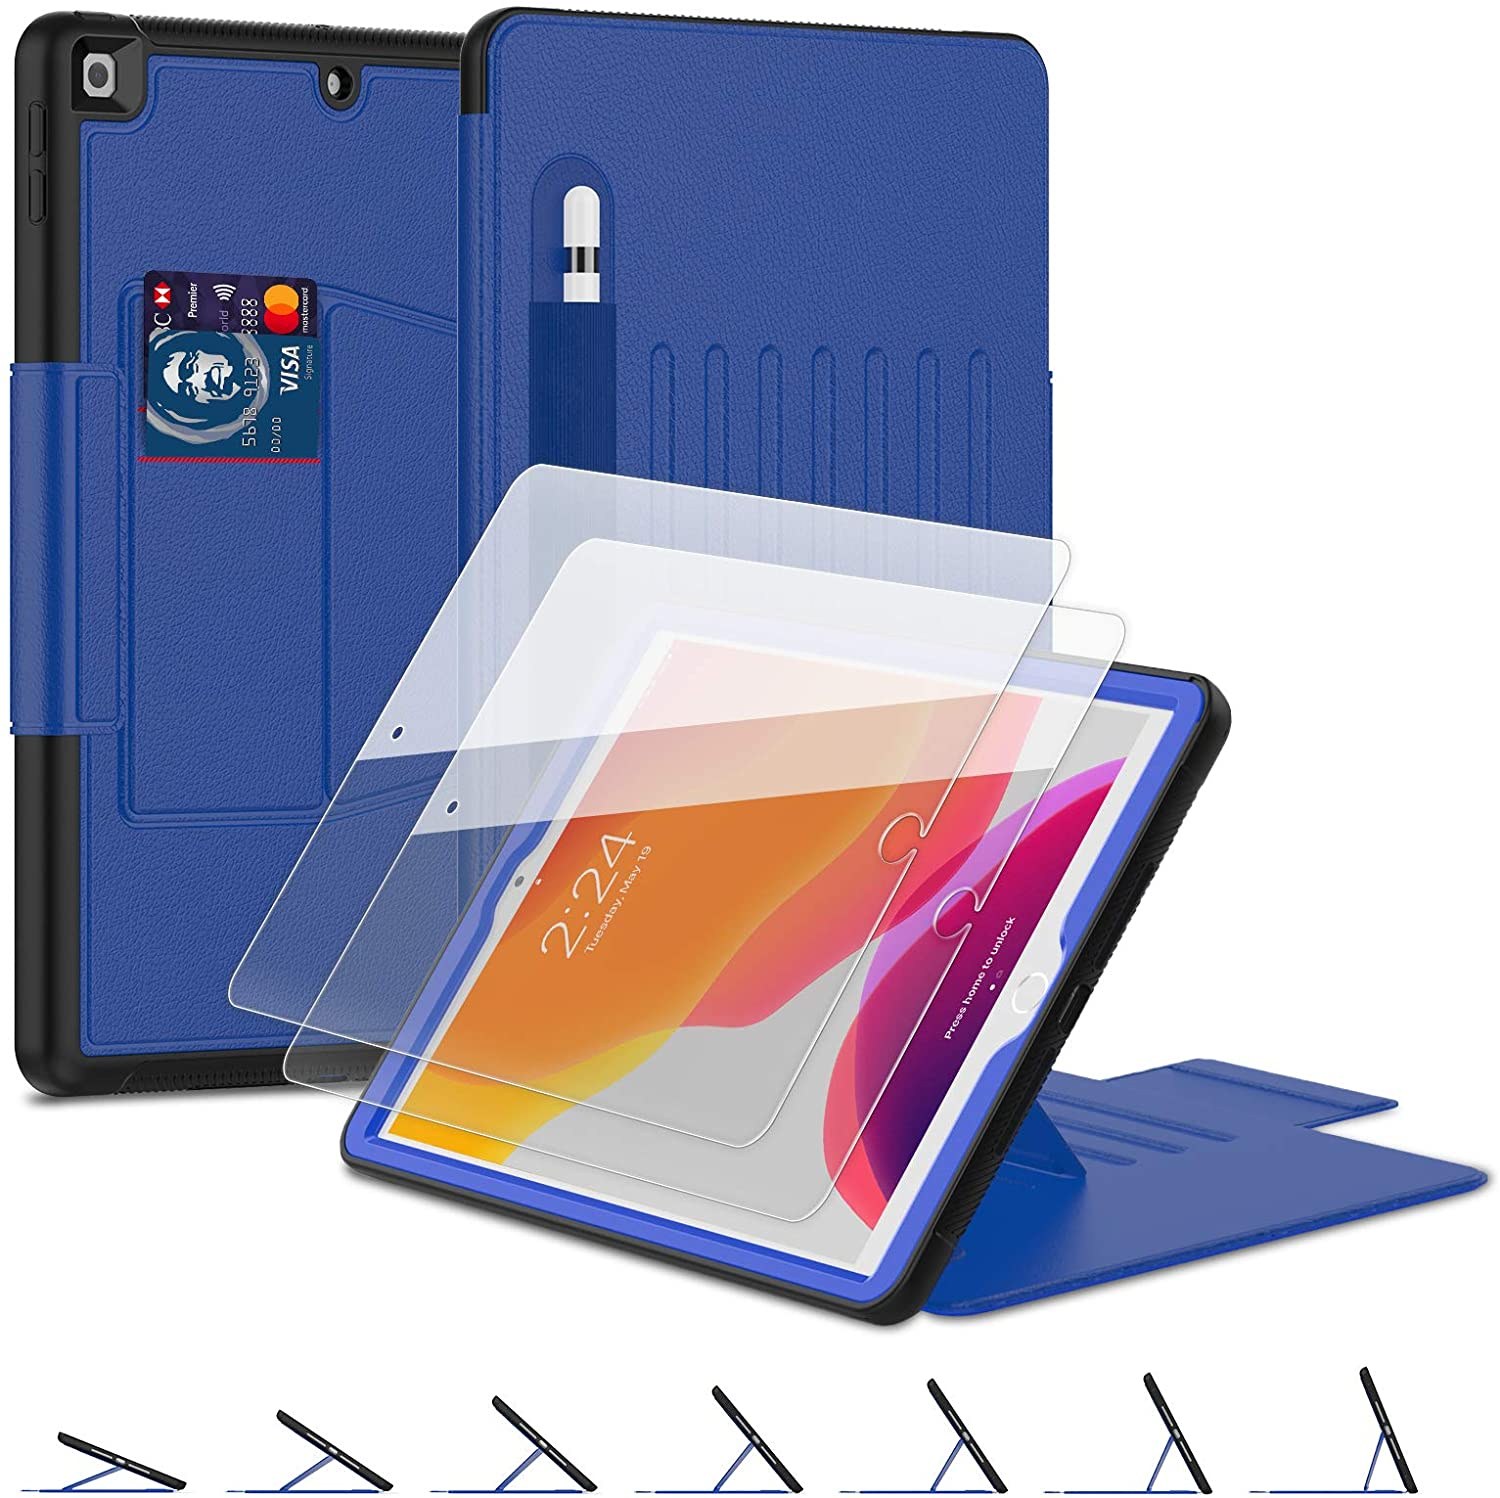 iPad 8th/7th Generation Case, iPad 10.2 Case 2020/2019, BASE MALL [Shockproof] Protective Leather Case with [2 Pack] 9H Tempered Glass, 7 Angles Magnetic Stand, Pencil Holder, Sleep/Wake Cover (Blue)